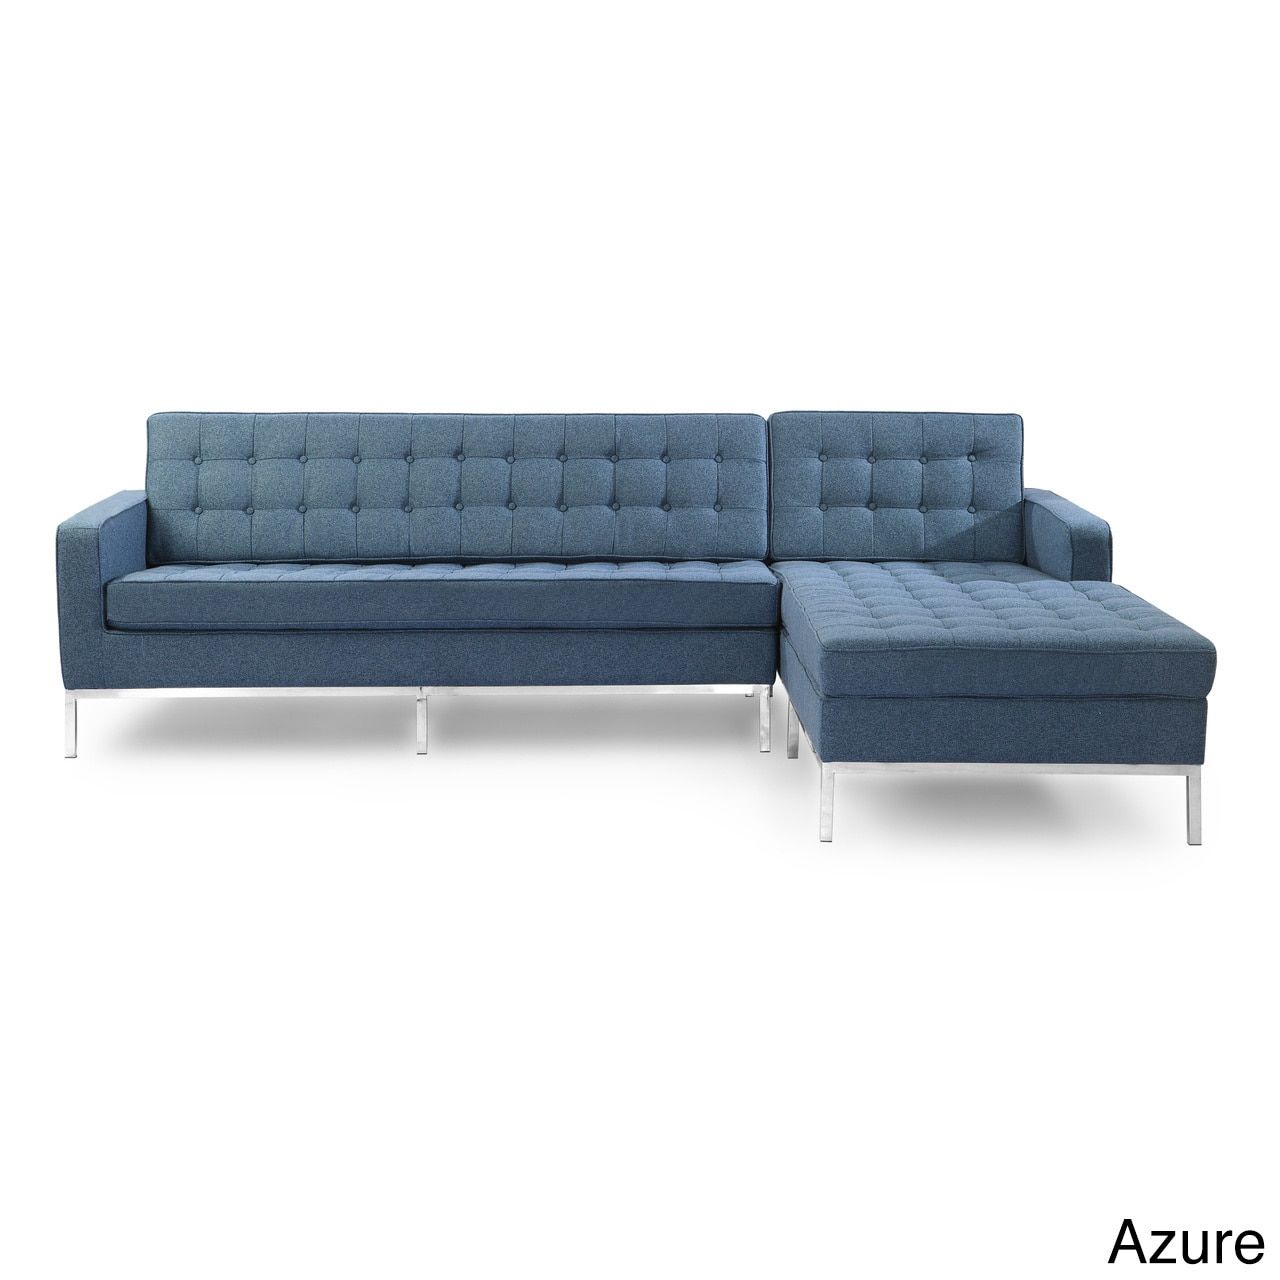 Kardiel Florence Knoll Style Houndstooth Twill Right-facing Sofa Sectional  sc 1 st  Pinterest : knoll sectional - Sectionals, Sofas & Couches